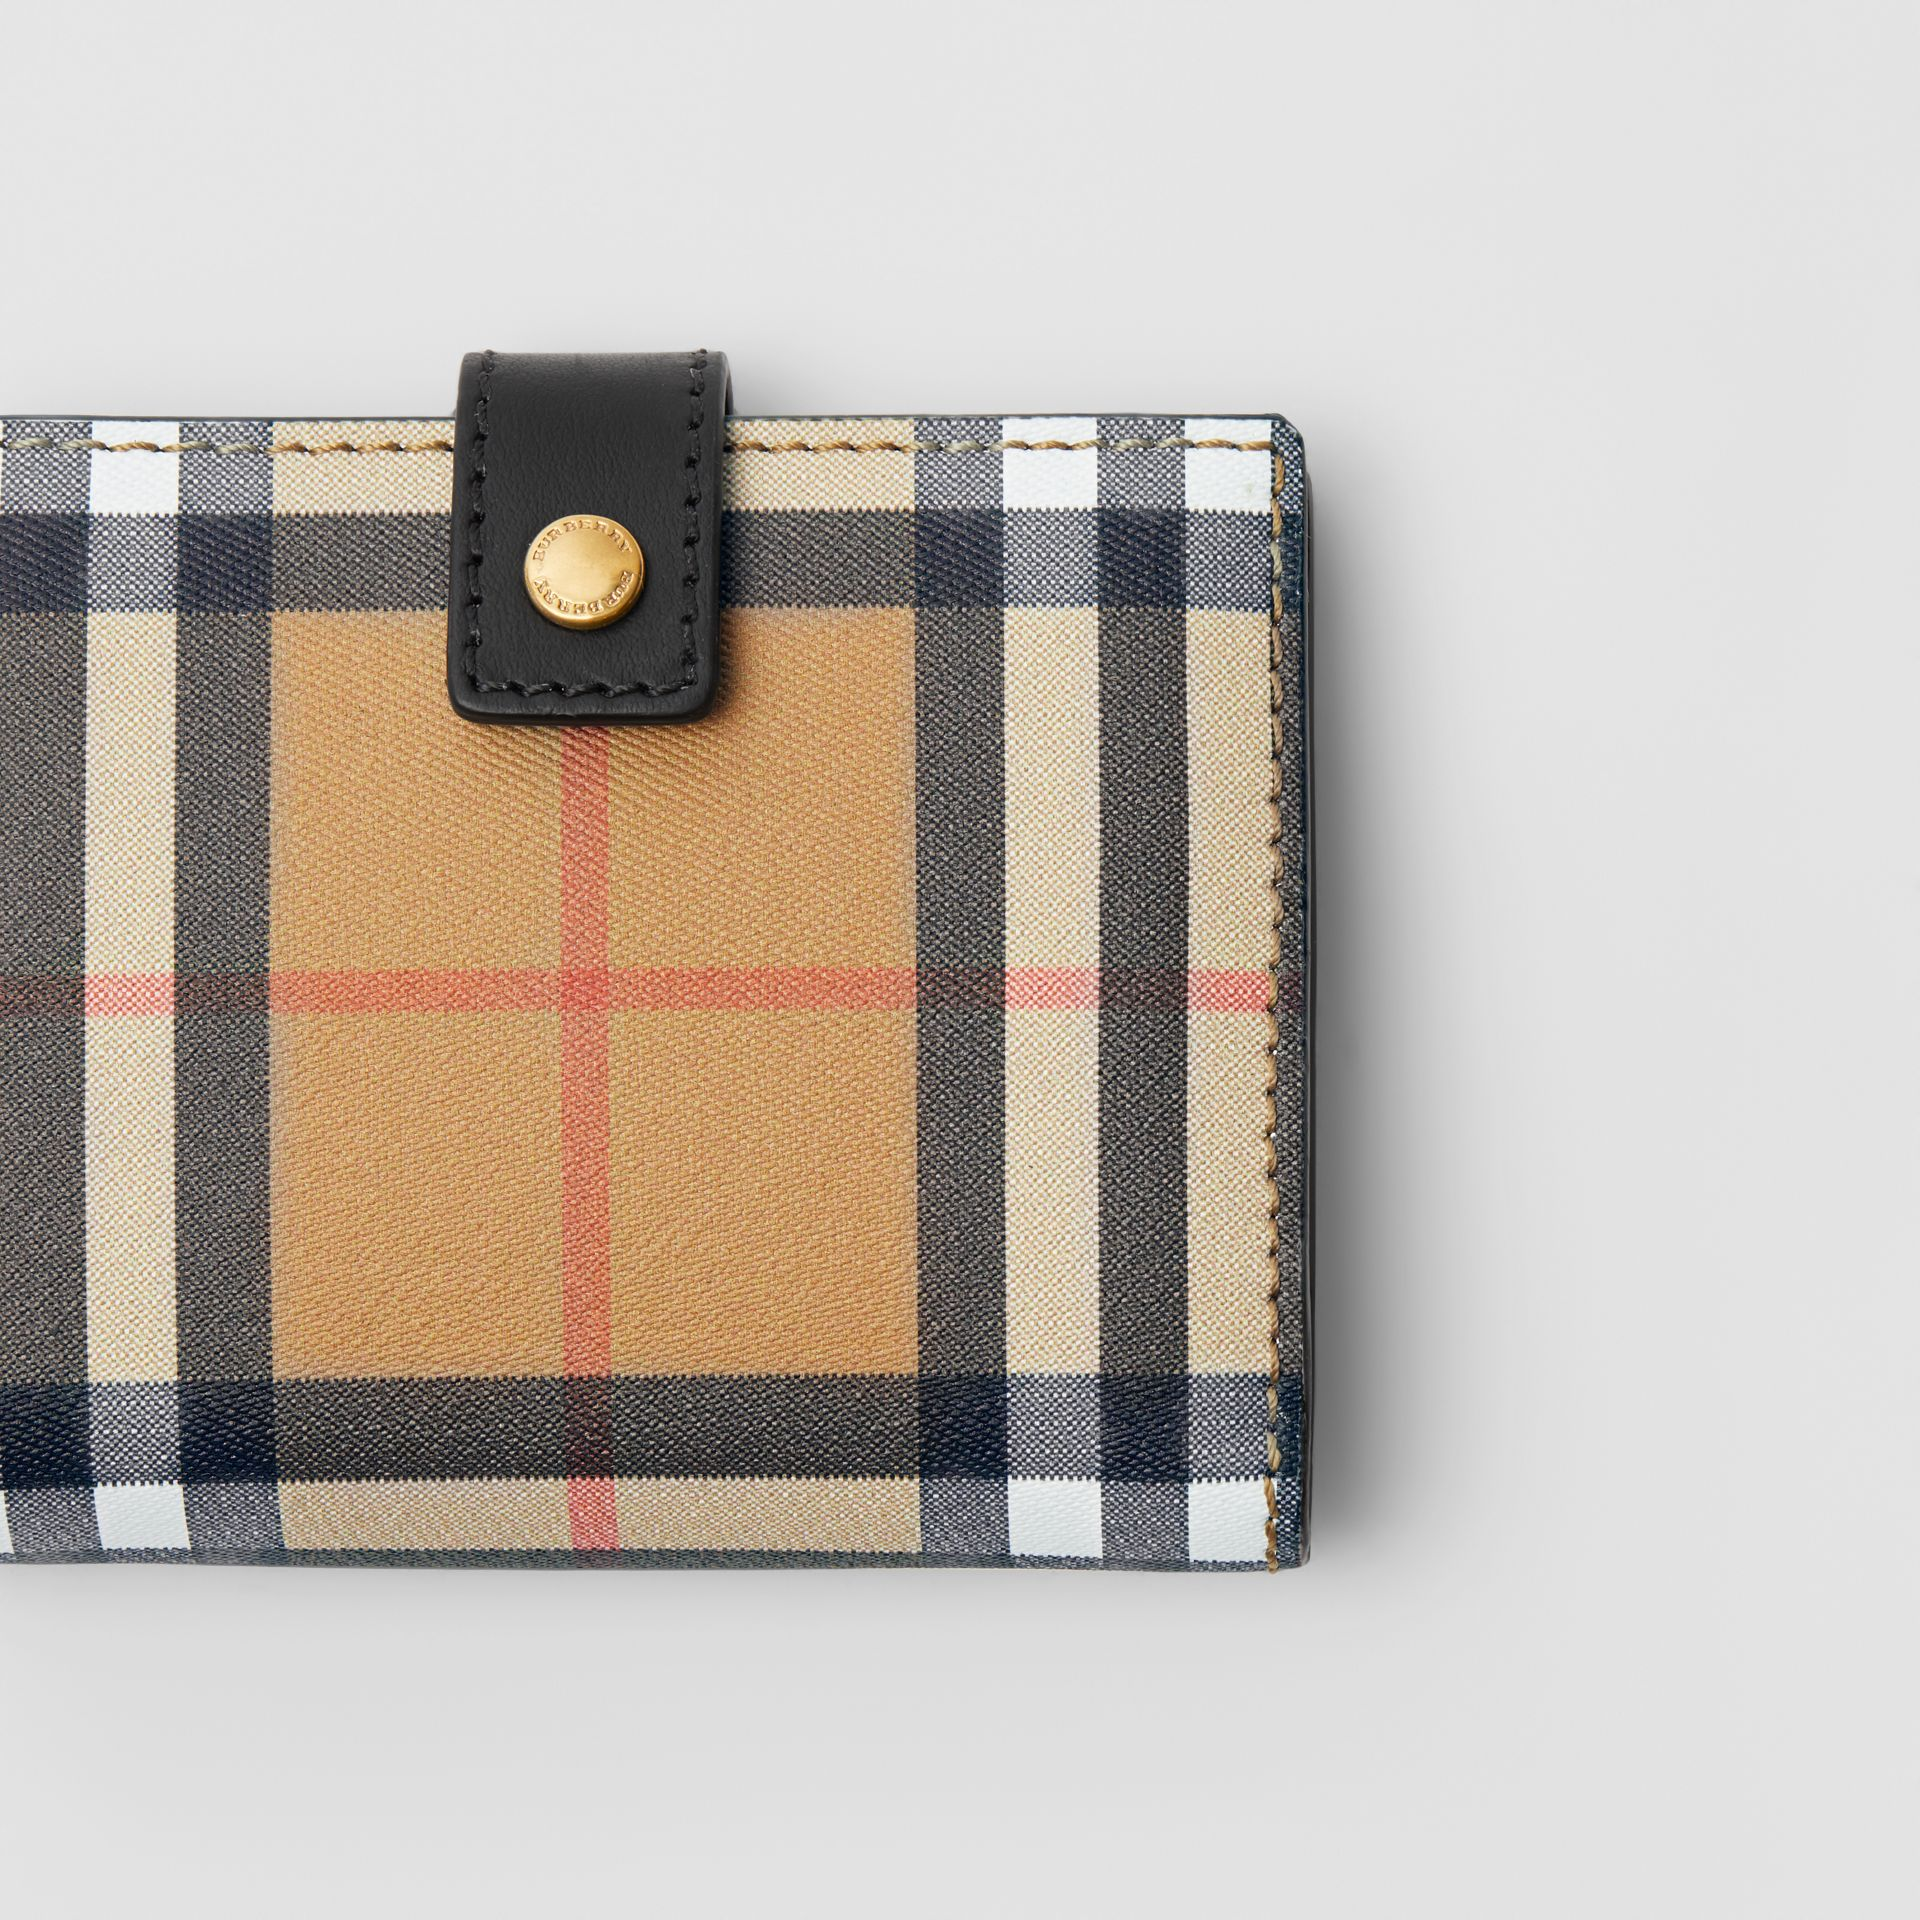 Small Vintage Check and Leather Folding Wallet in Black - Women | Burberry Canada - gallery image 1